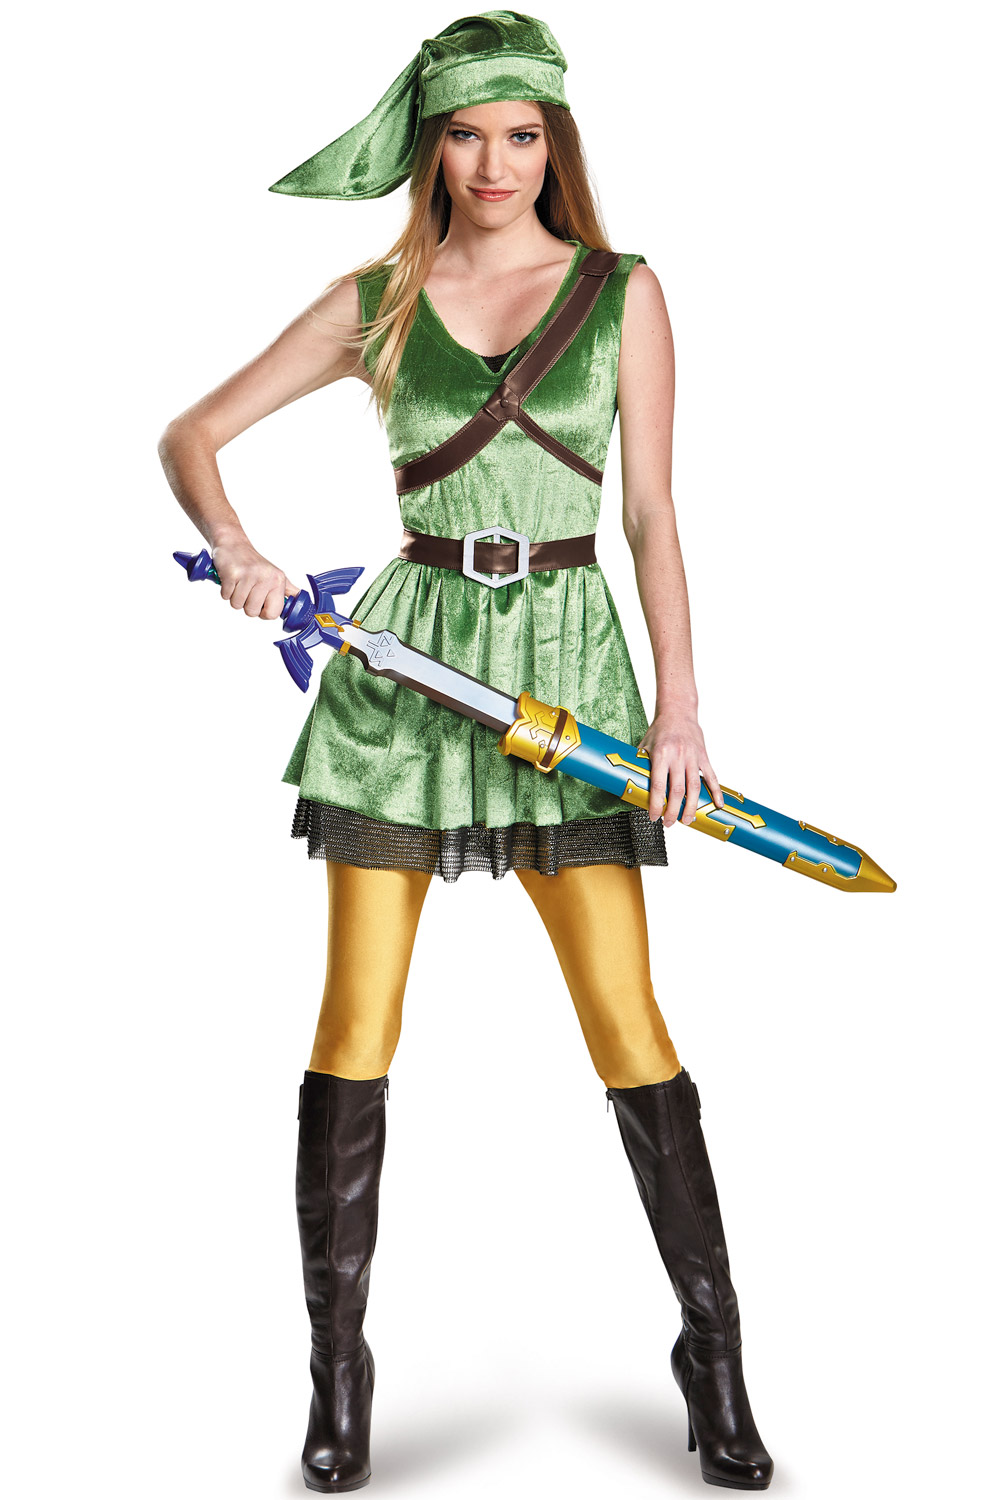 Link Female Adult Costume Purecostumes Com